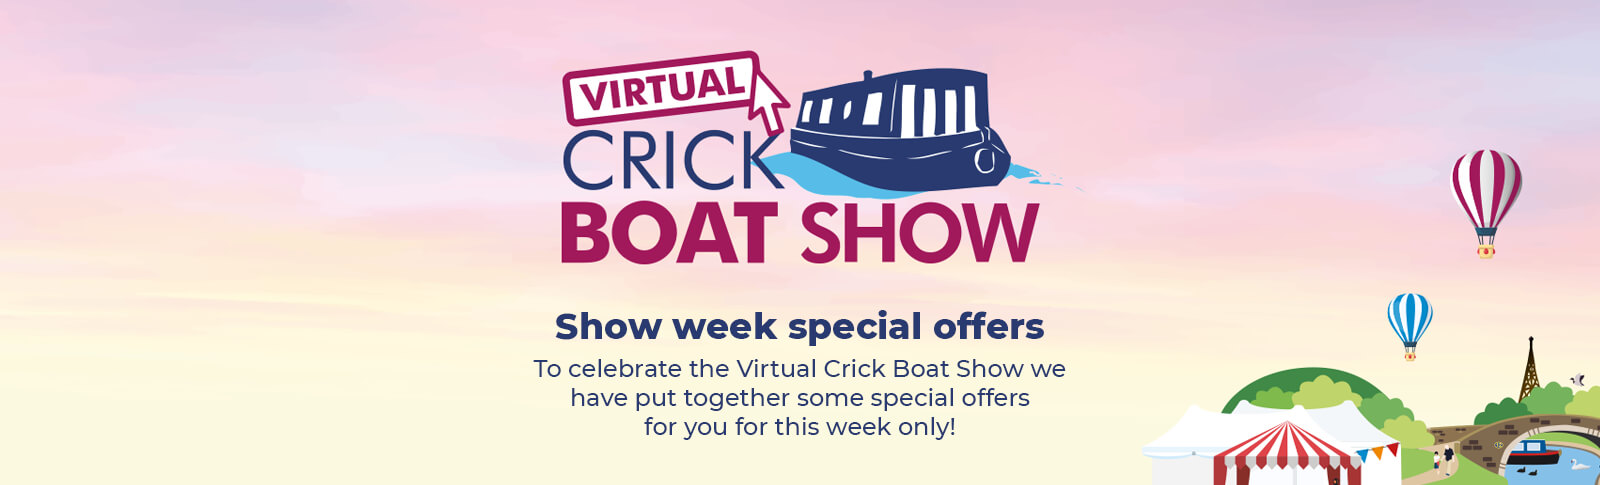 Shop Virtual Crick Boat Show Special Offers